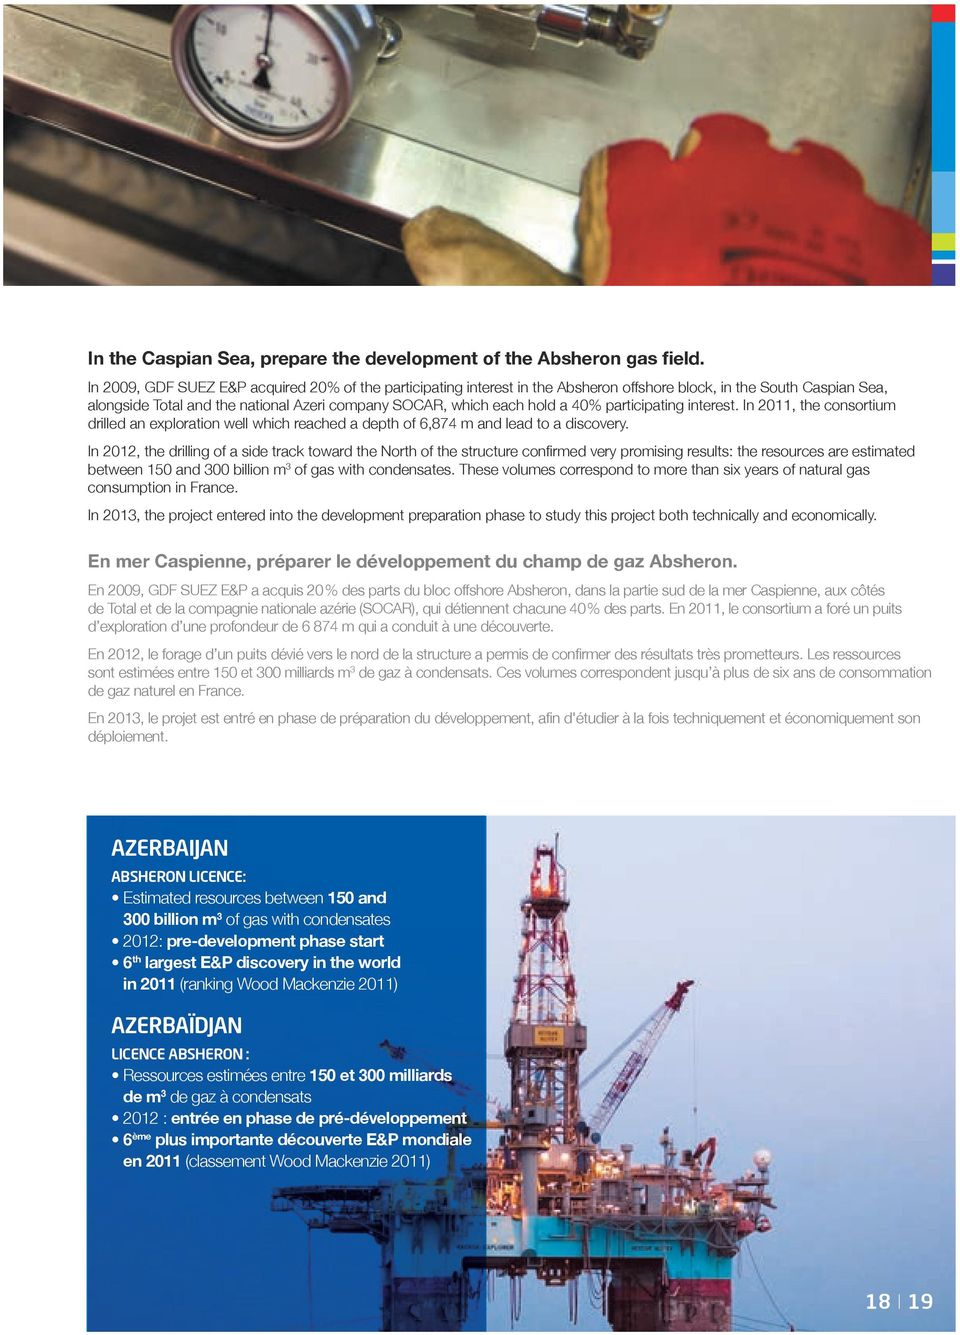 participating interest. In 2011, the consortium drilled an exploration well which reached a depth of 6,874 m and lead to a discovery.